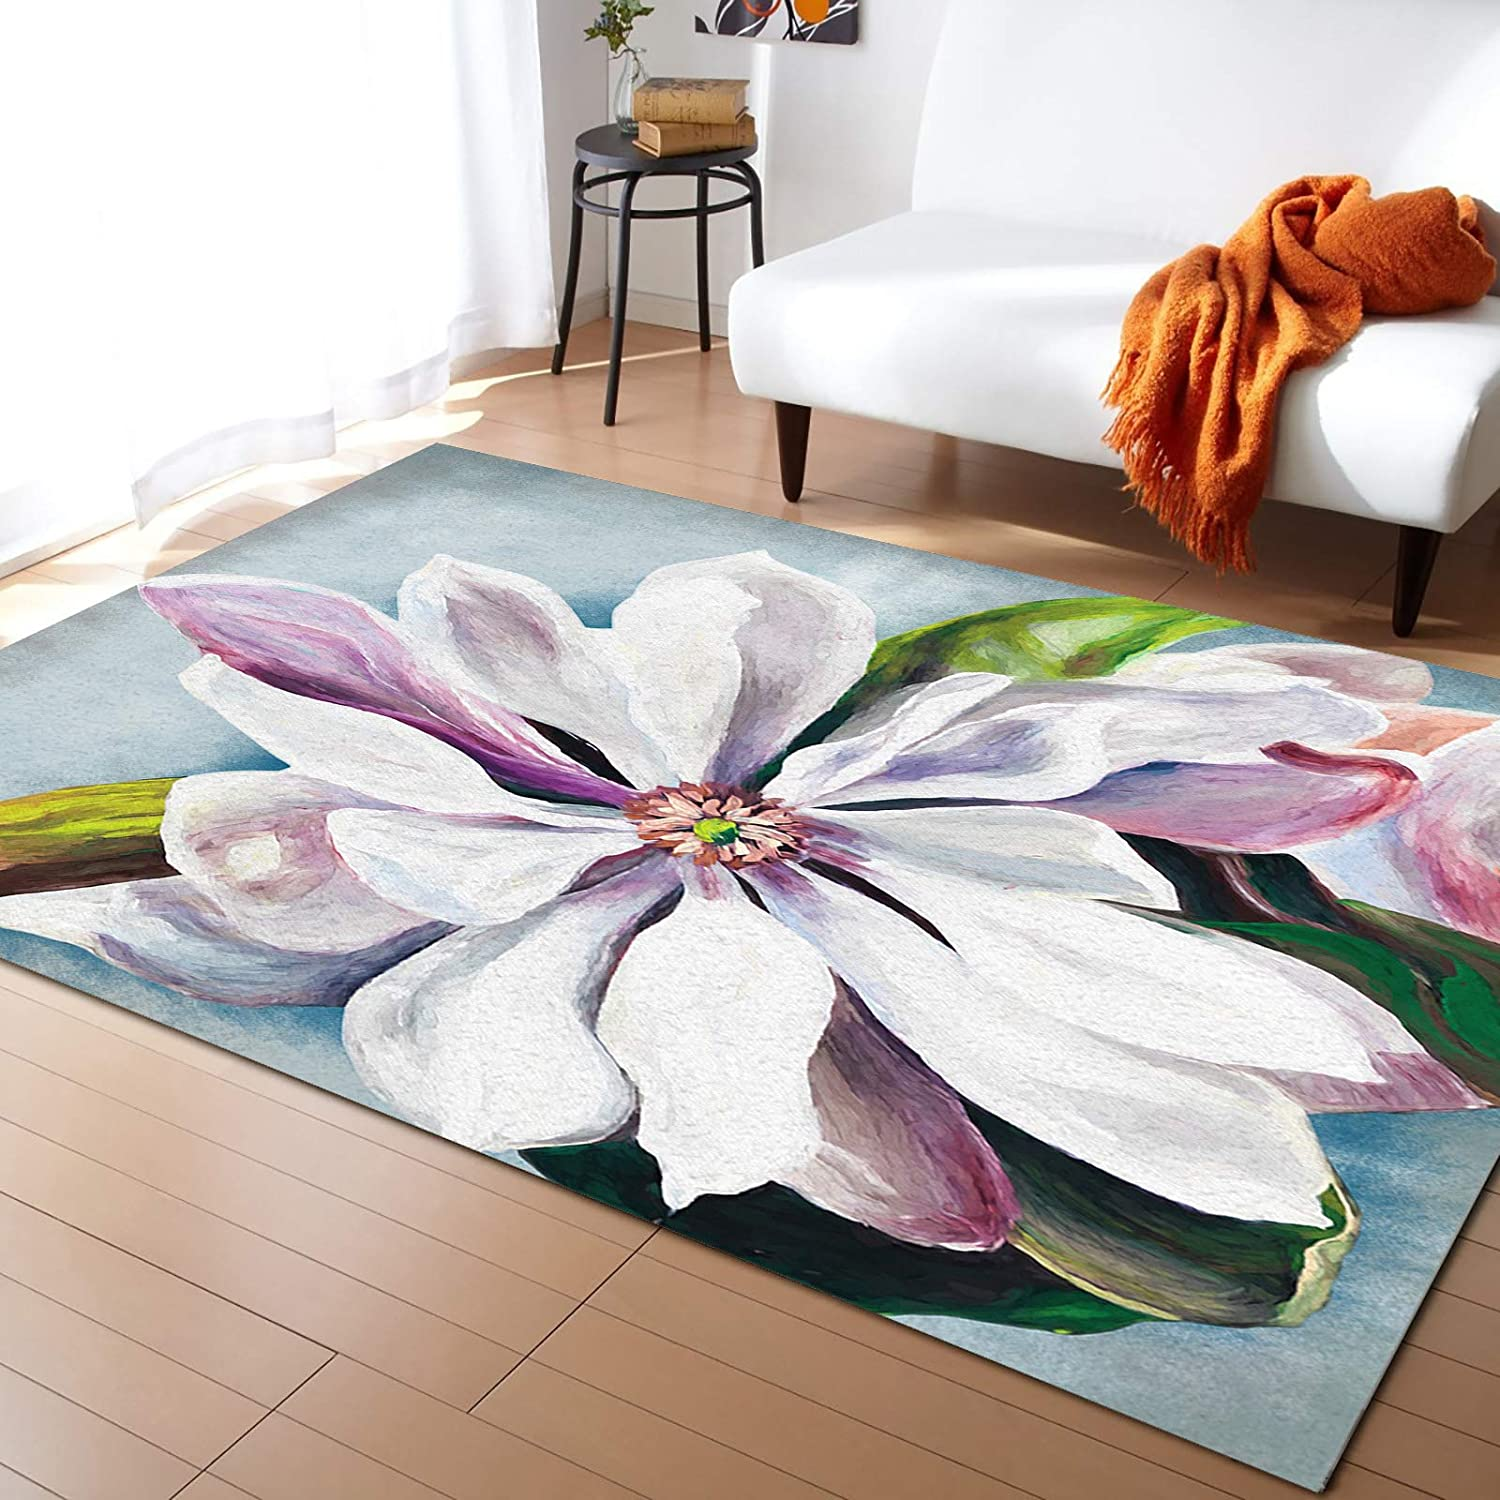 HomeDecorArt Large Area Rugs 5' gift x Cover Throw Floor Rapid rise Nu Carpet 7'